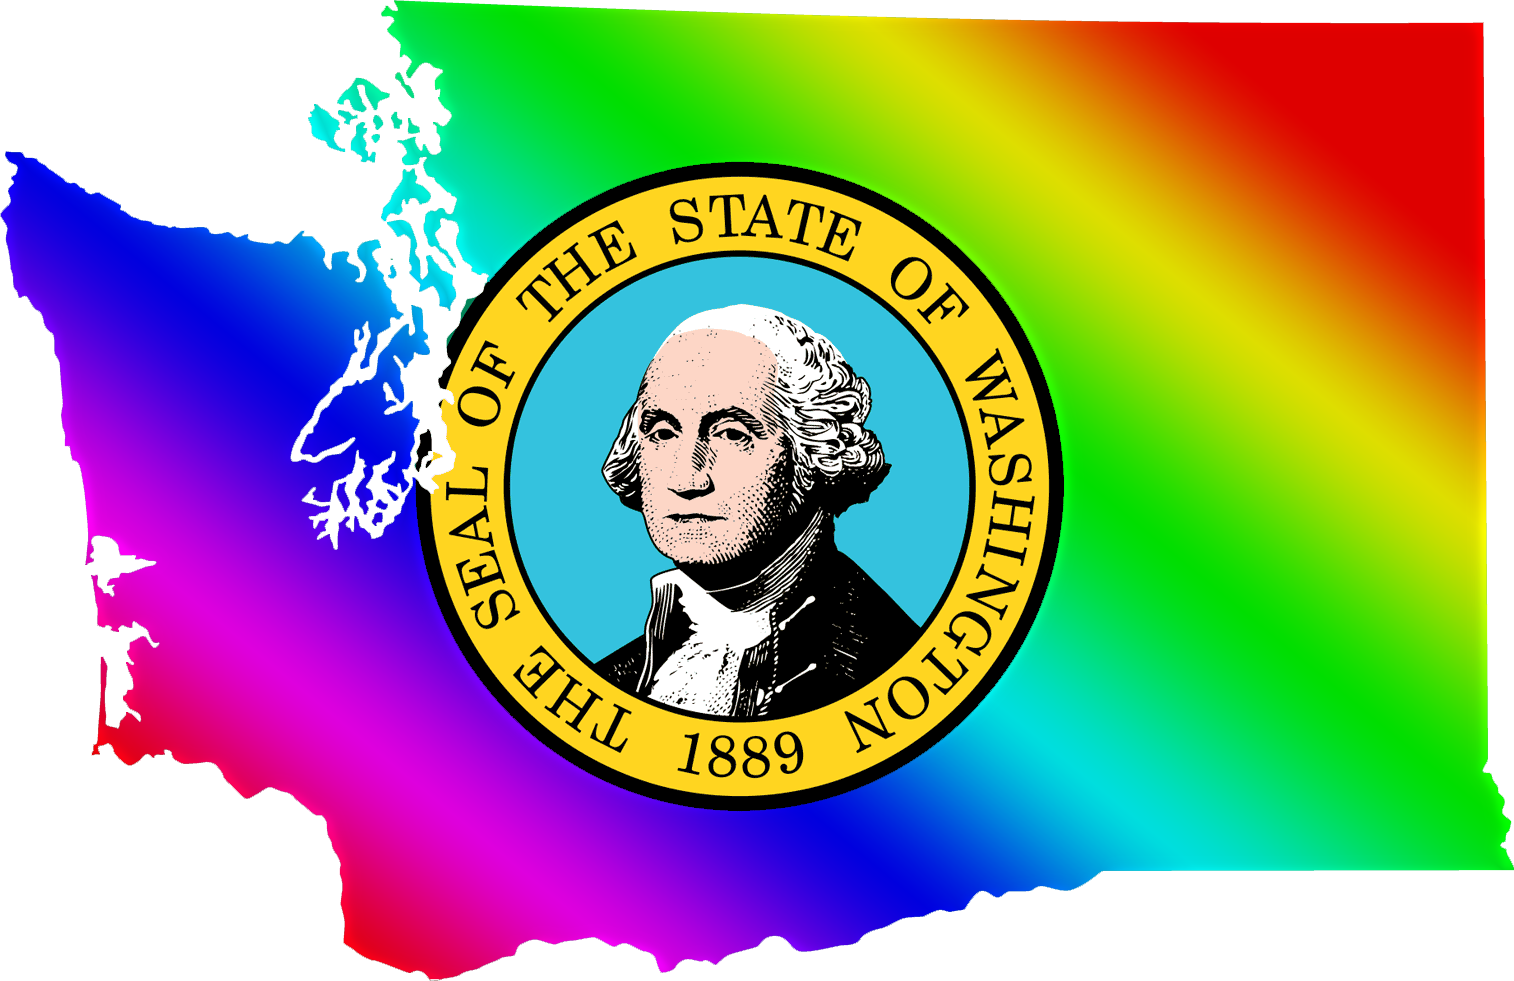 washington_state_gay.png